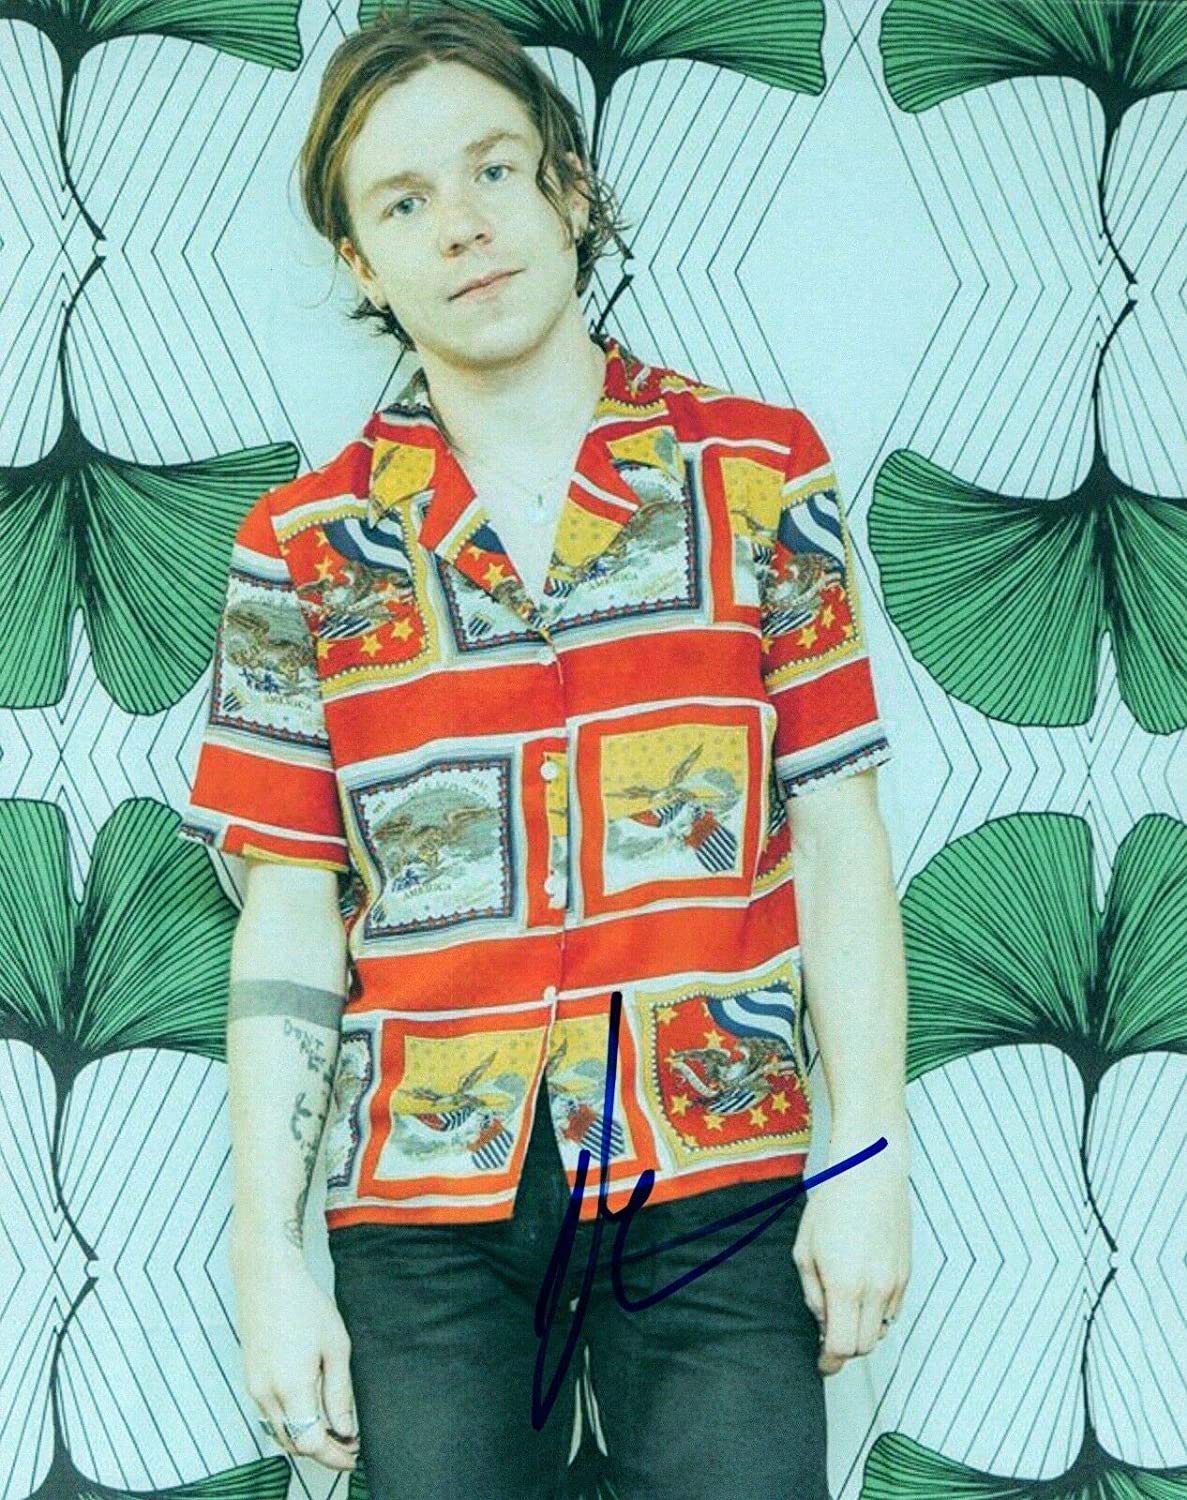 Matt Shultz Signed Autographed 8x10 Photo Lead Singer Of